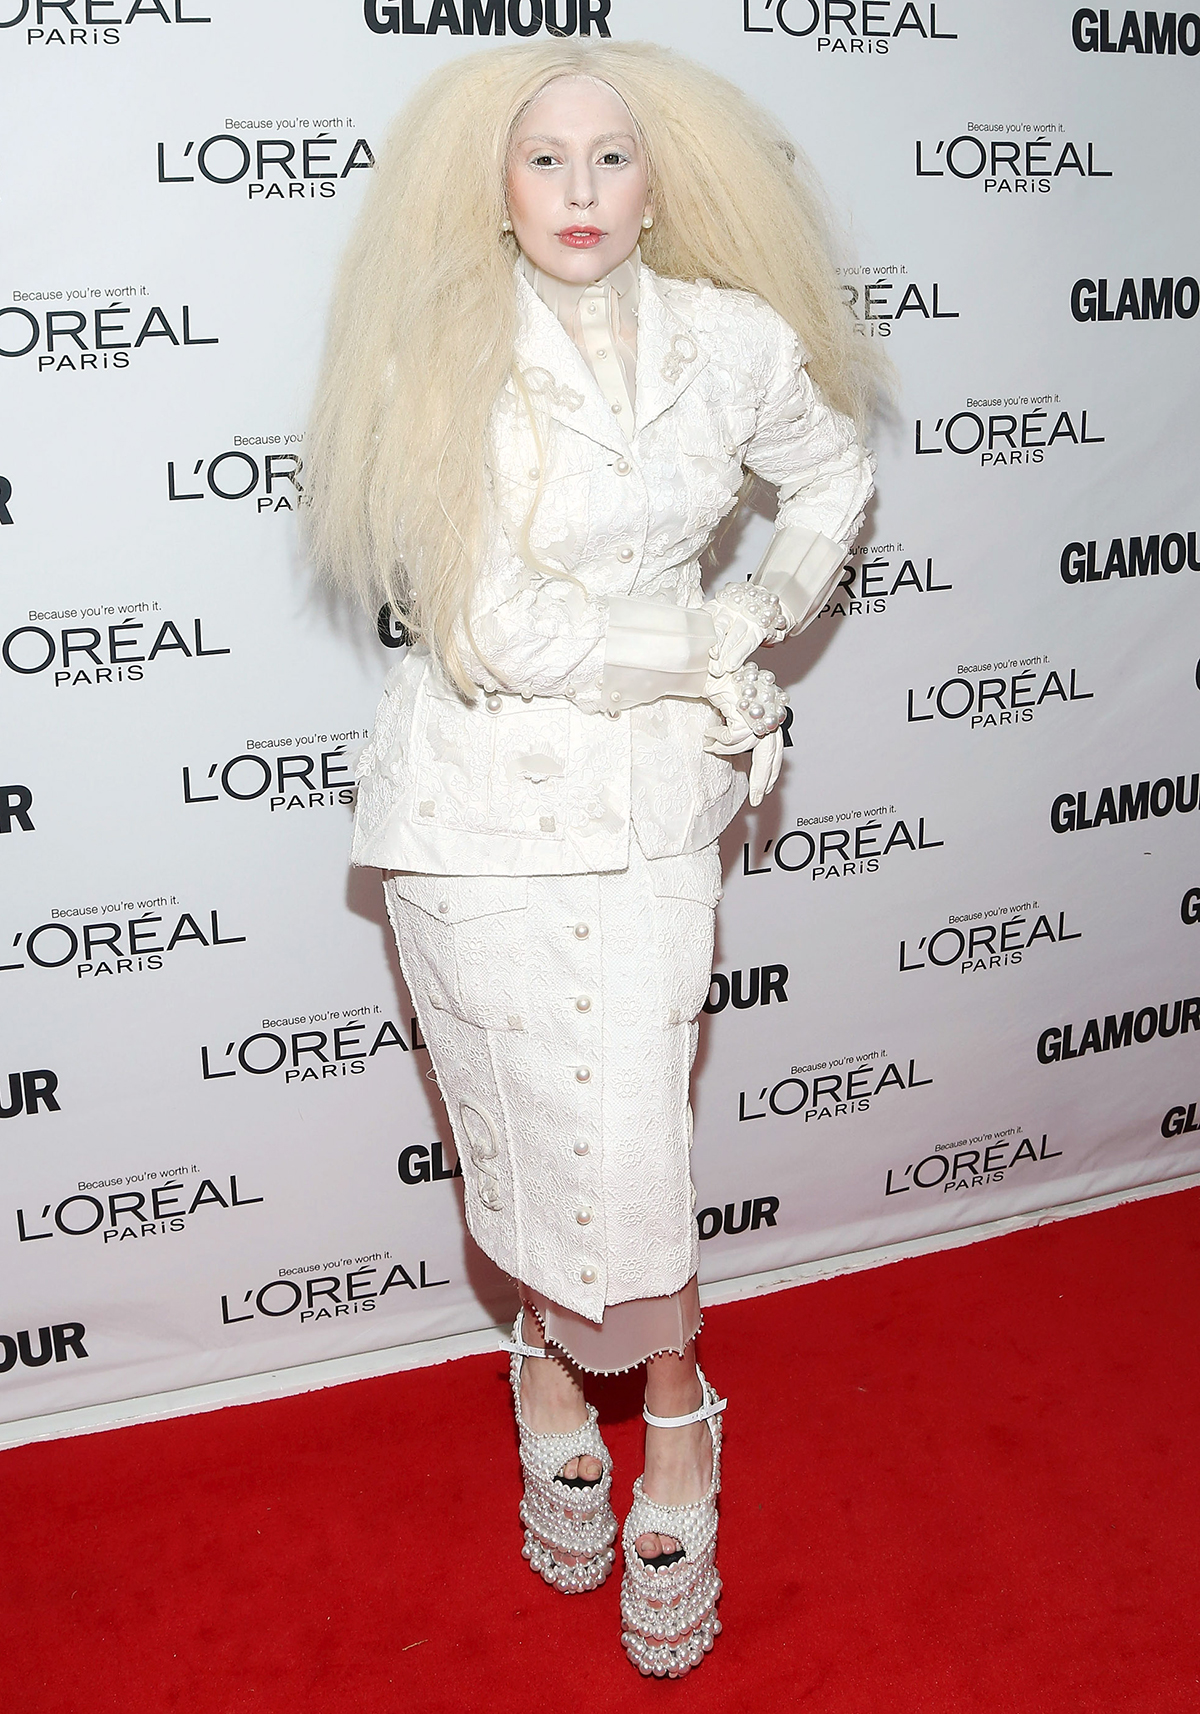 Or This All-White-Everything Look from the 2013 Glamour Women of the Year Award